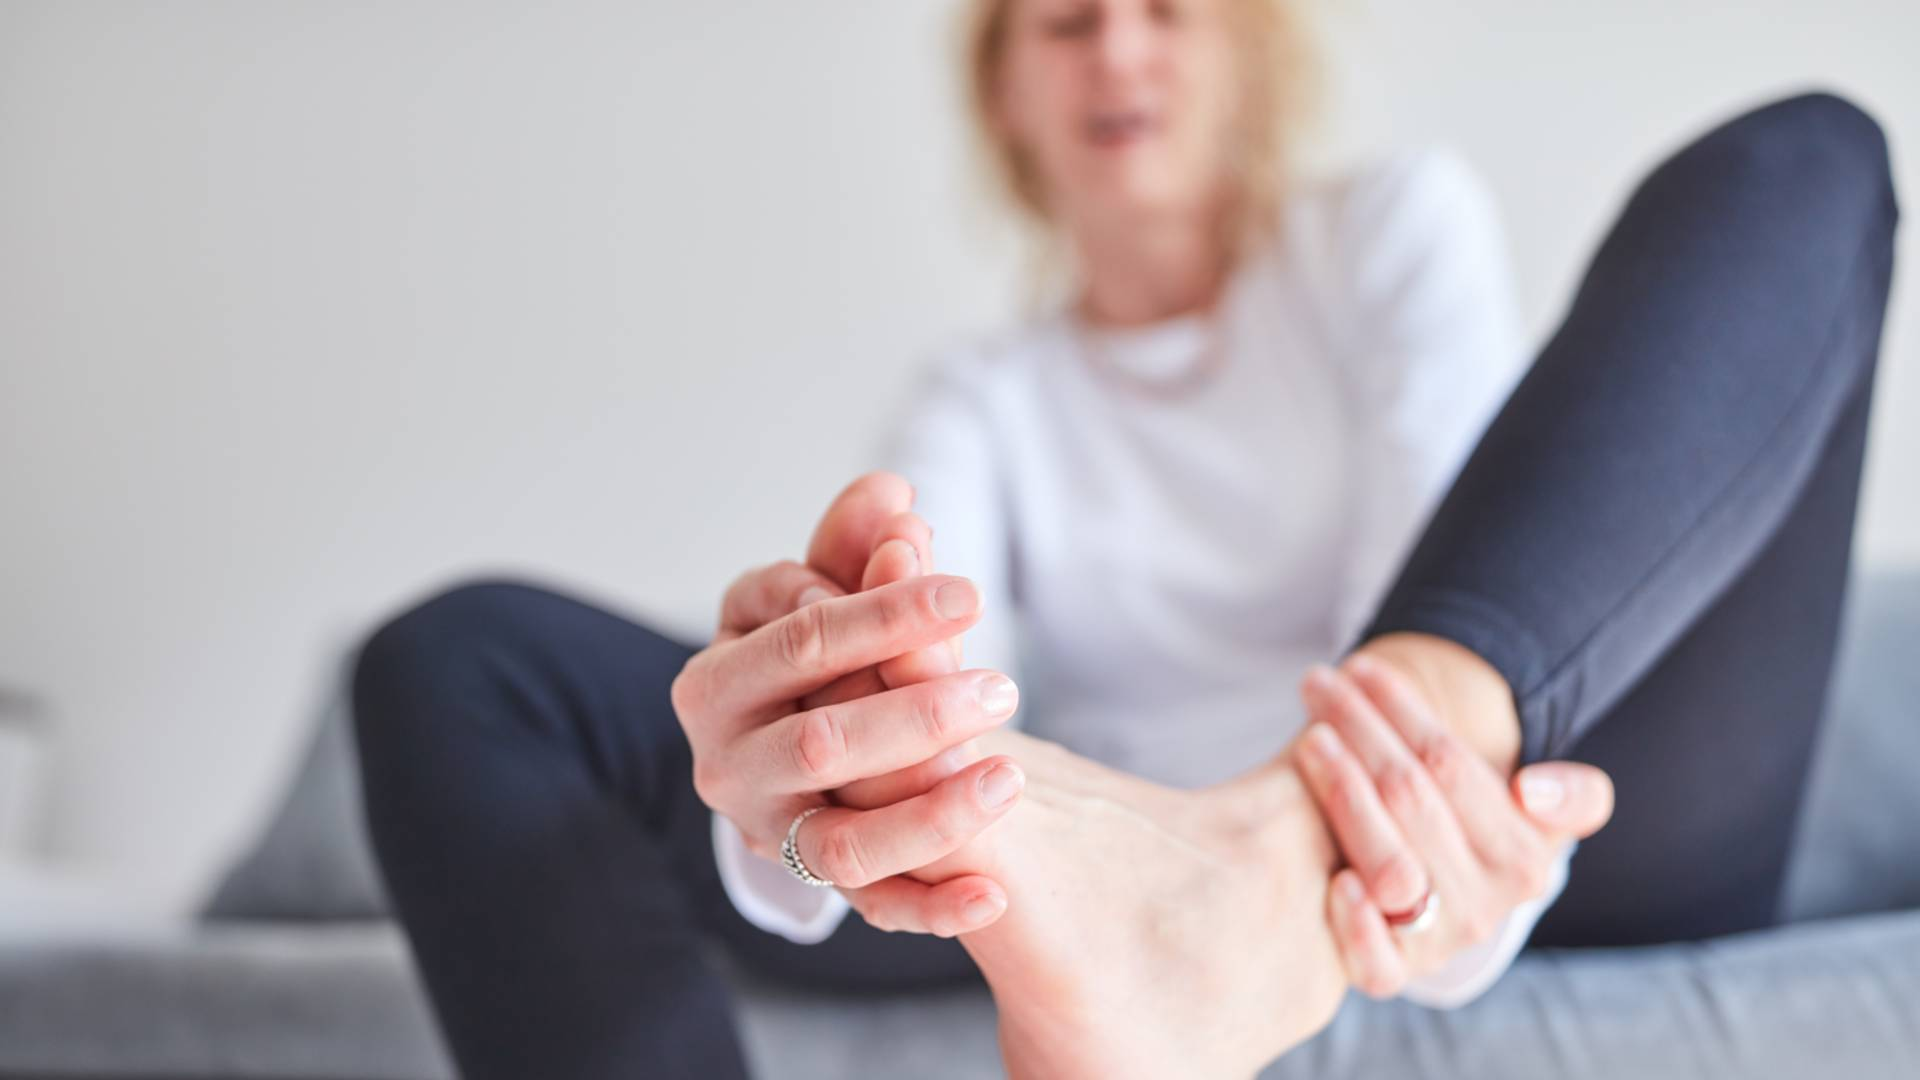 Image of woman with toe sprain pain